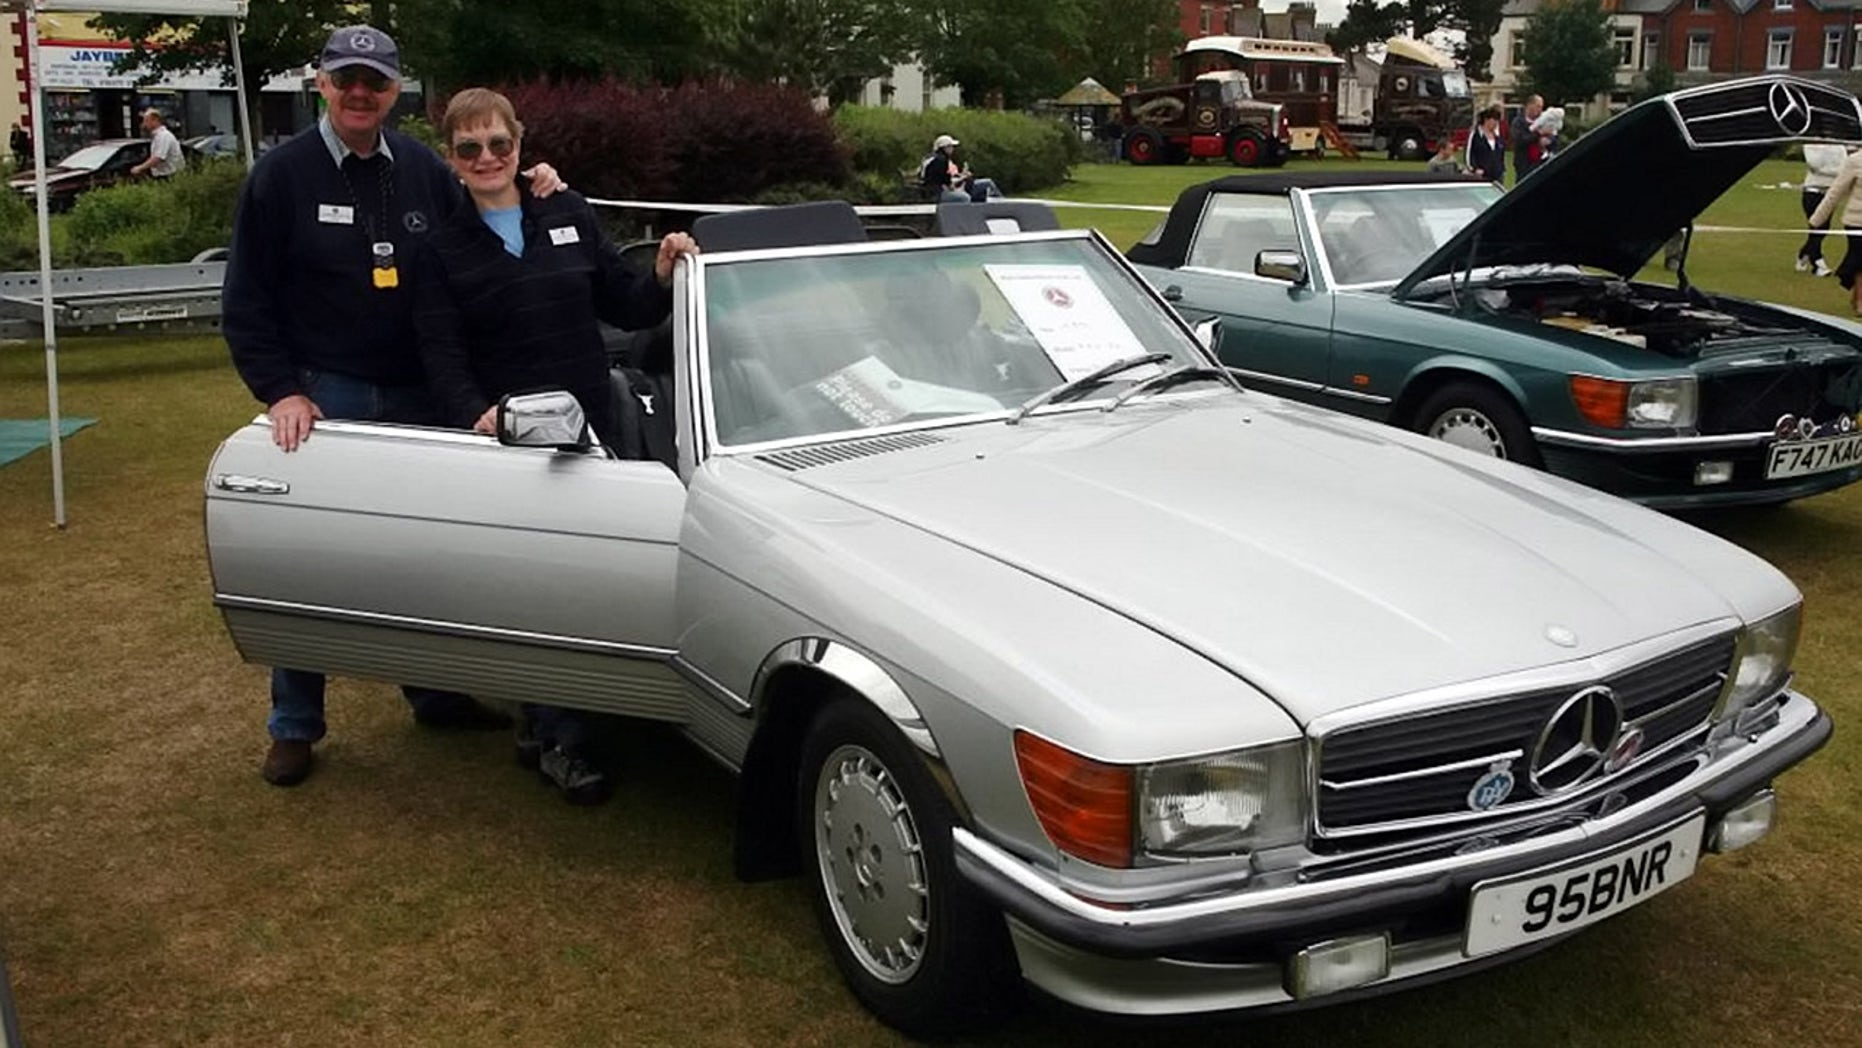 William Reid and Kathryn Workman were putting their Mercedes-Benz convertible away for the winter.